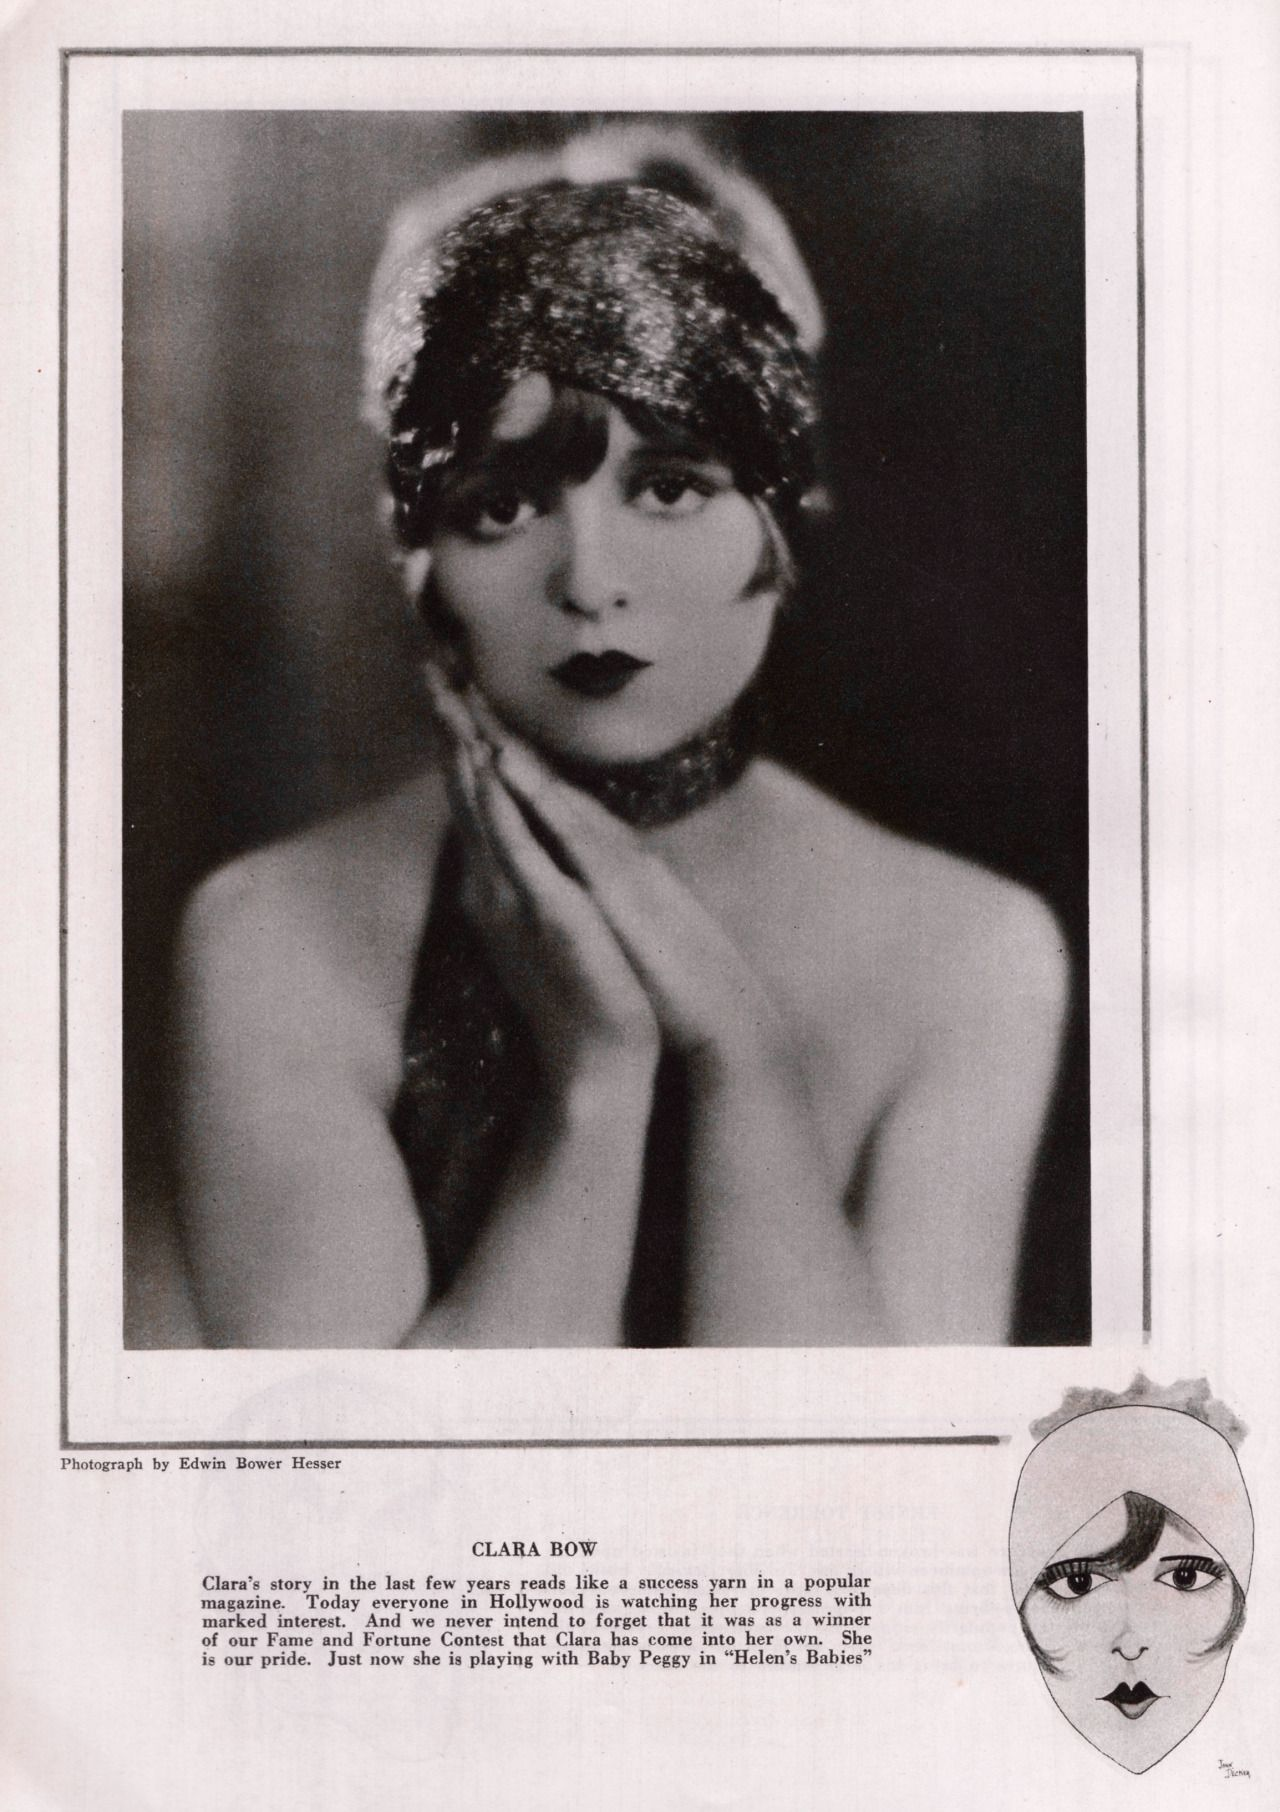 CLARA BOW Clara's story in the last few years reads like a success yarn in a popular magazine. Today everyone in Hollywood is watching her progress with marked interest. And we never intend to forget that it was as a winner of our Fame and Fortune...